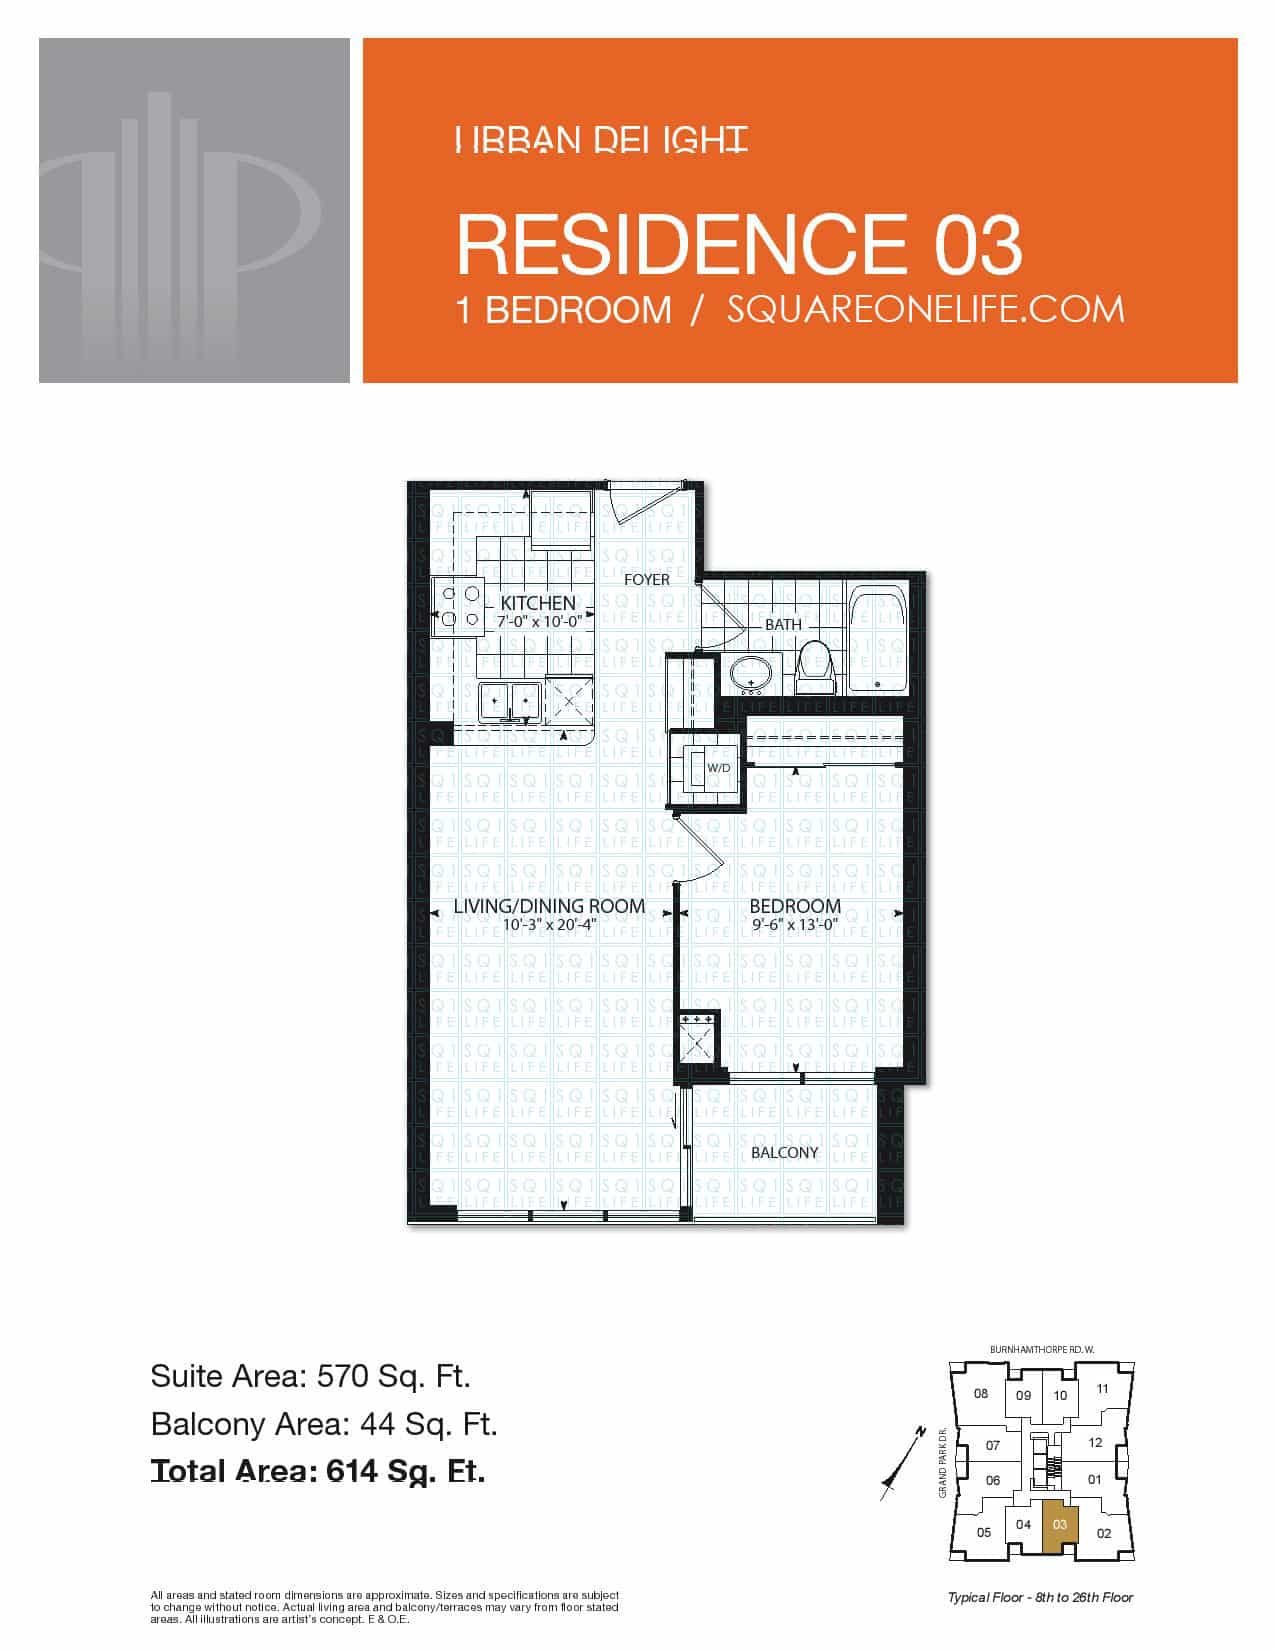 Grand-Park-Condo-3985-Grand-Park-Dr-Floorplan-Residence-3-1-Bed-1-Bath pinnacle grand park condo Pinnacle Grand Park Condo Grand Park Condo 3985 Grand Park Dr Floorplan Residence 3 1 Bed 1 Bath